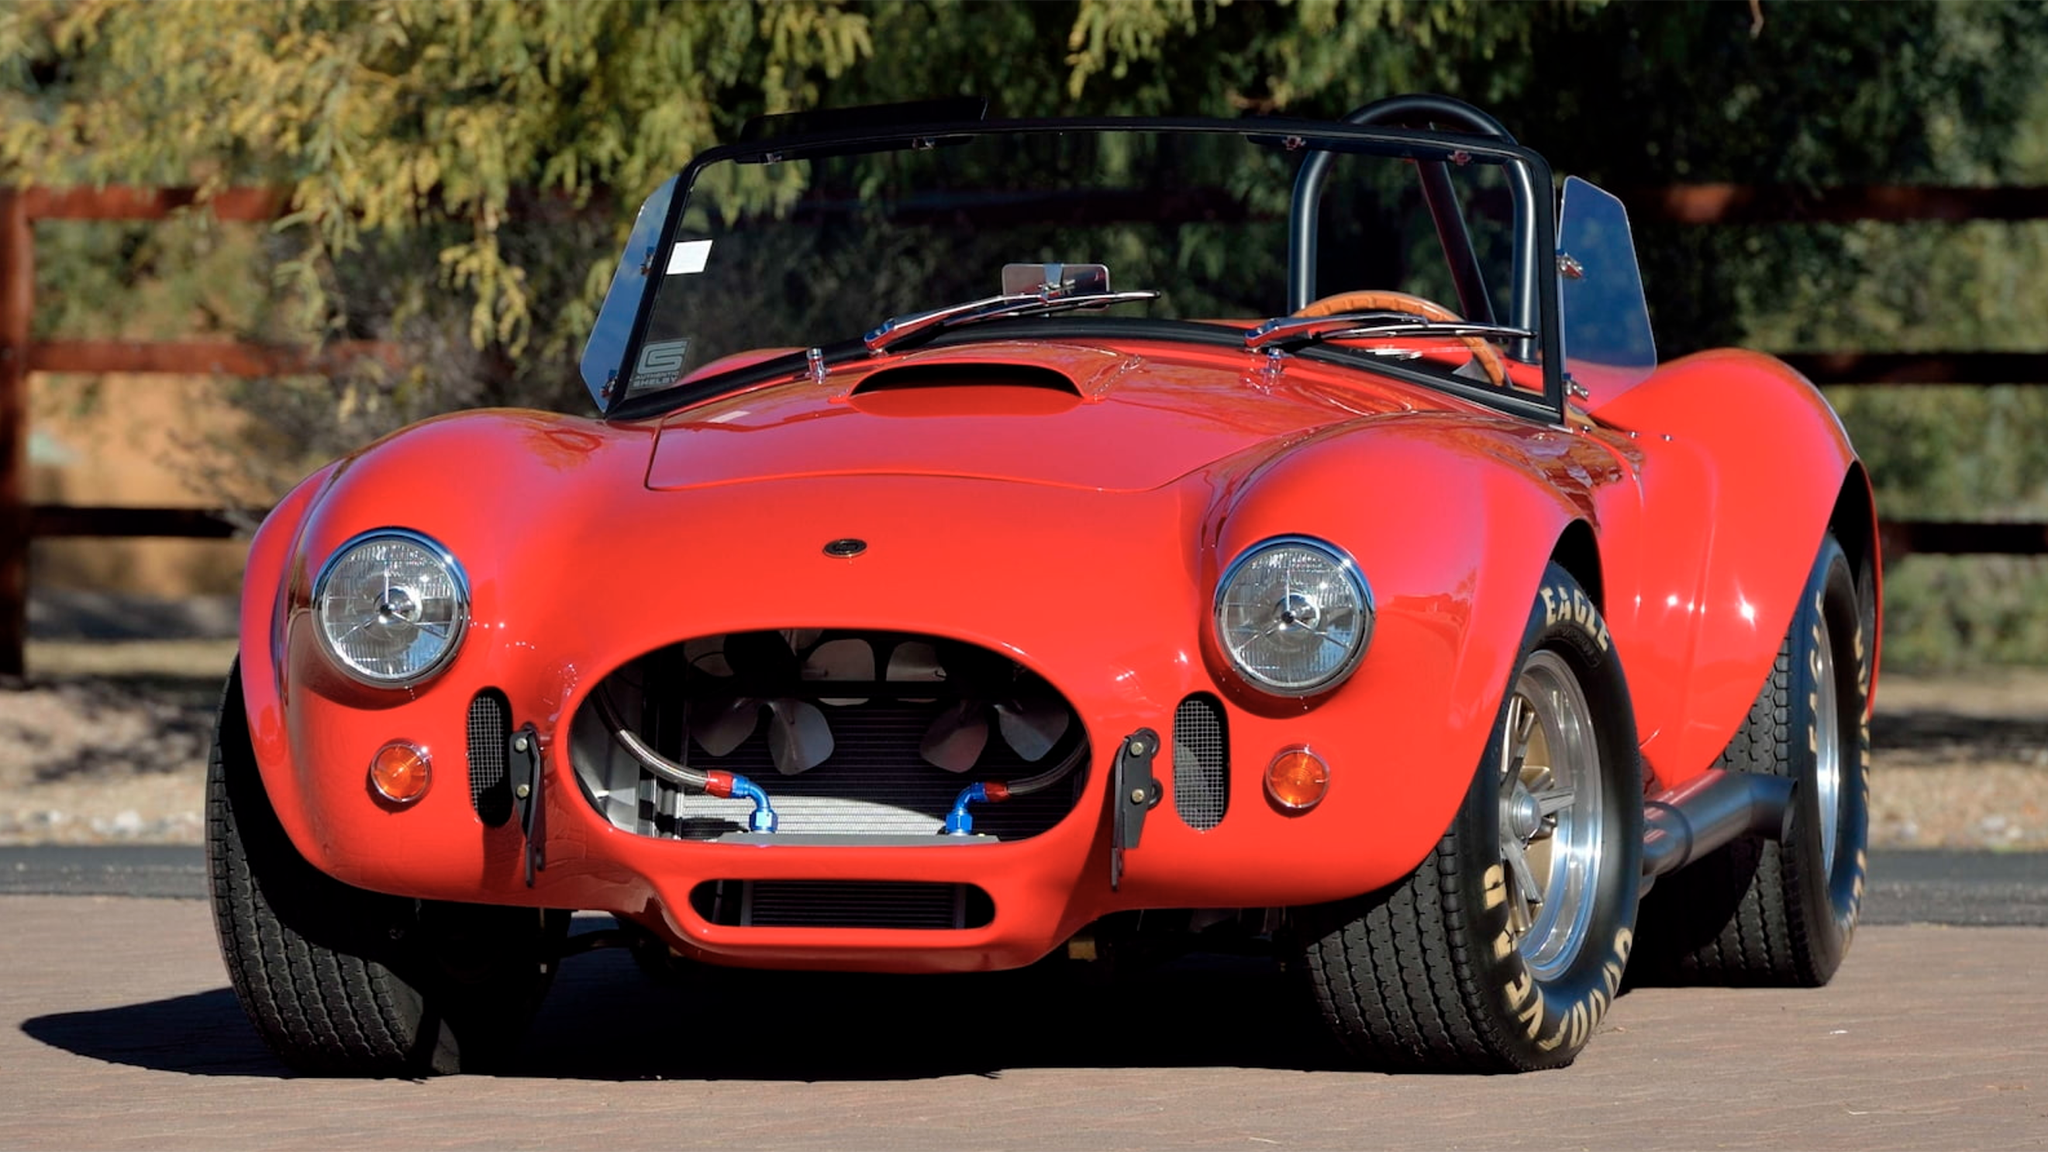 Rare Continuation Shelby Cobra Tribute to Carroll's Ferrari Beef Heads to Auction